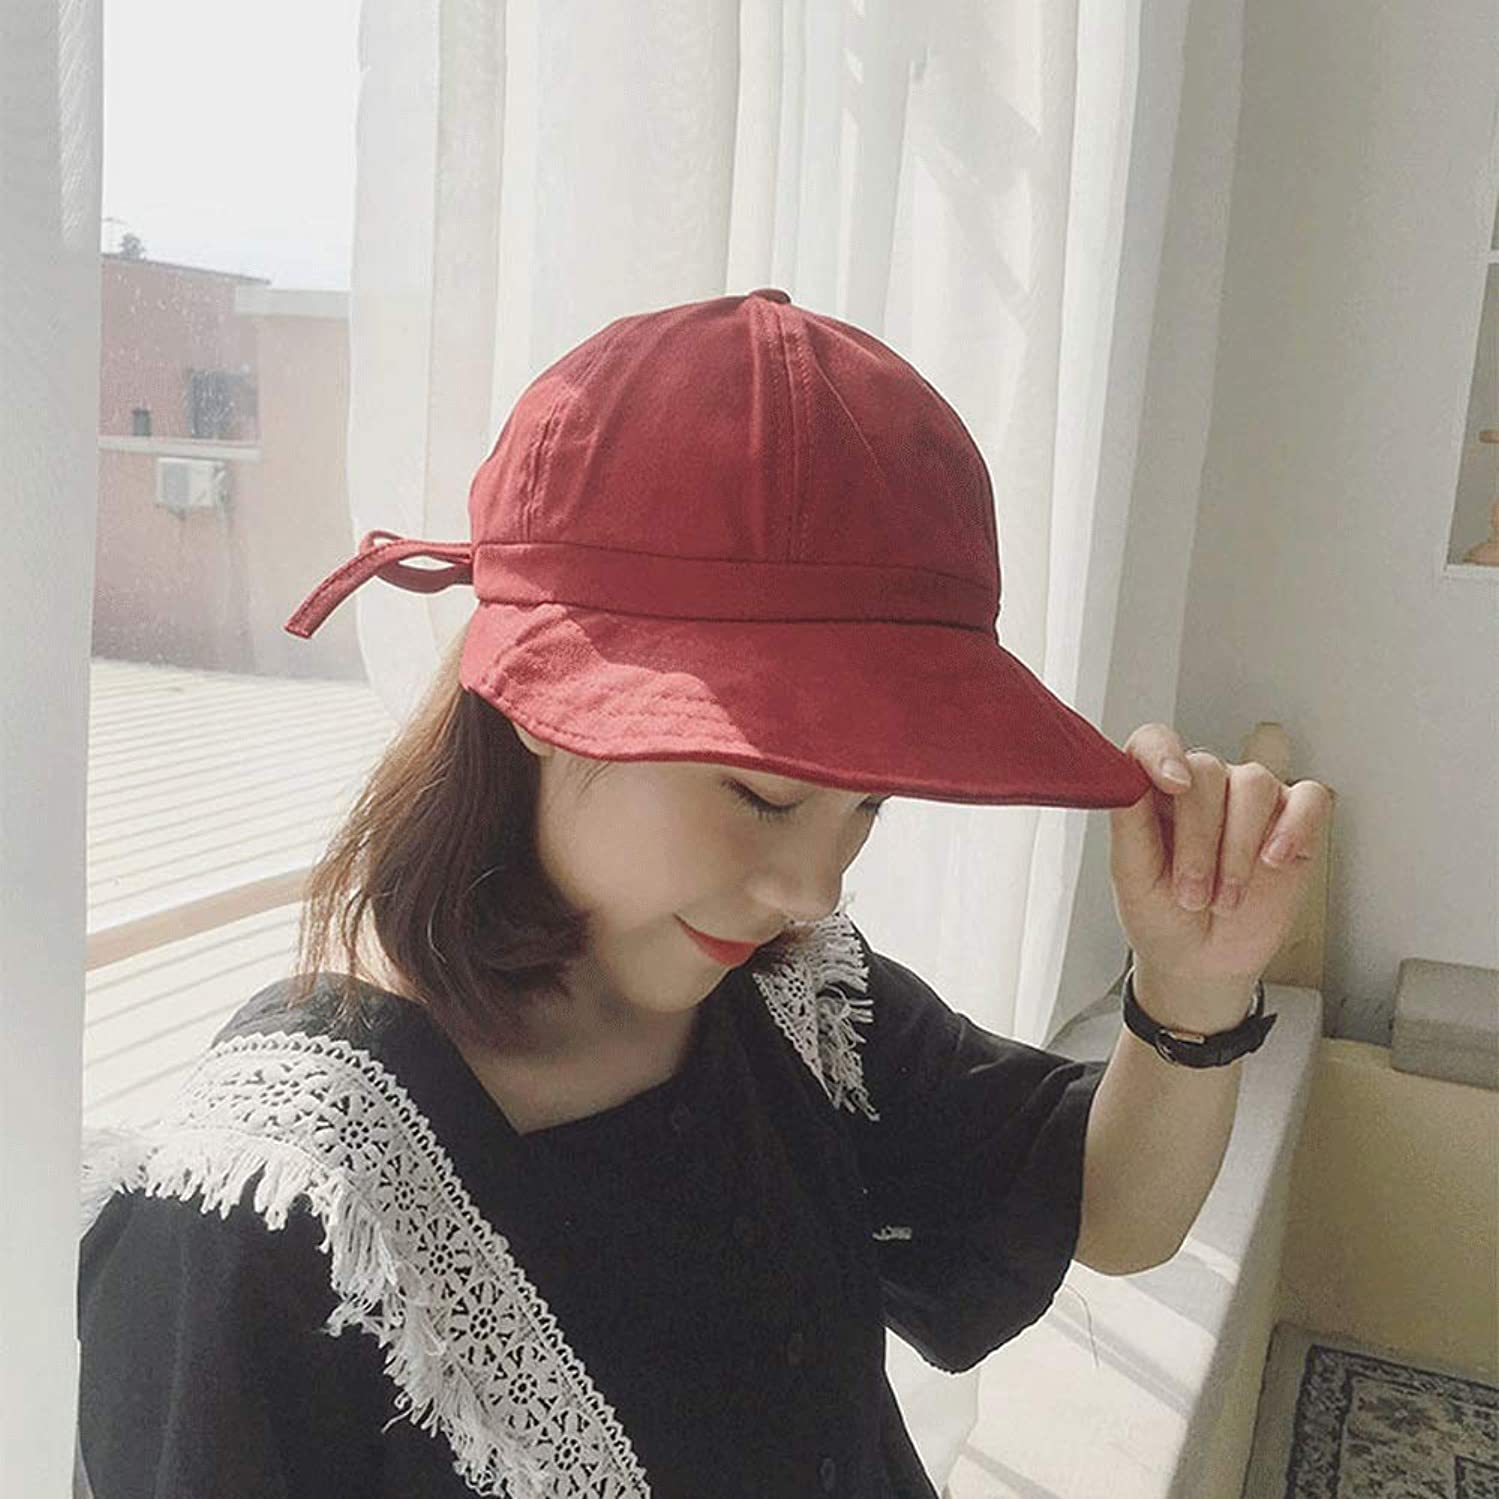 LDDENDP Women's Wild Casual Sun Hat 100% Cotton Cap Sweat-absorbent Outdoor Fisherman Fishing Casual Sunscreen Student Hat Hand-embroidered Dome Cap Sun Hat Bow Tide Basin Art 4 Colors (Color : Red)